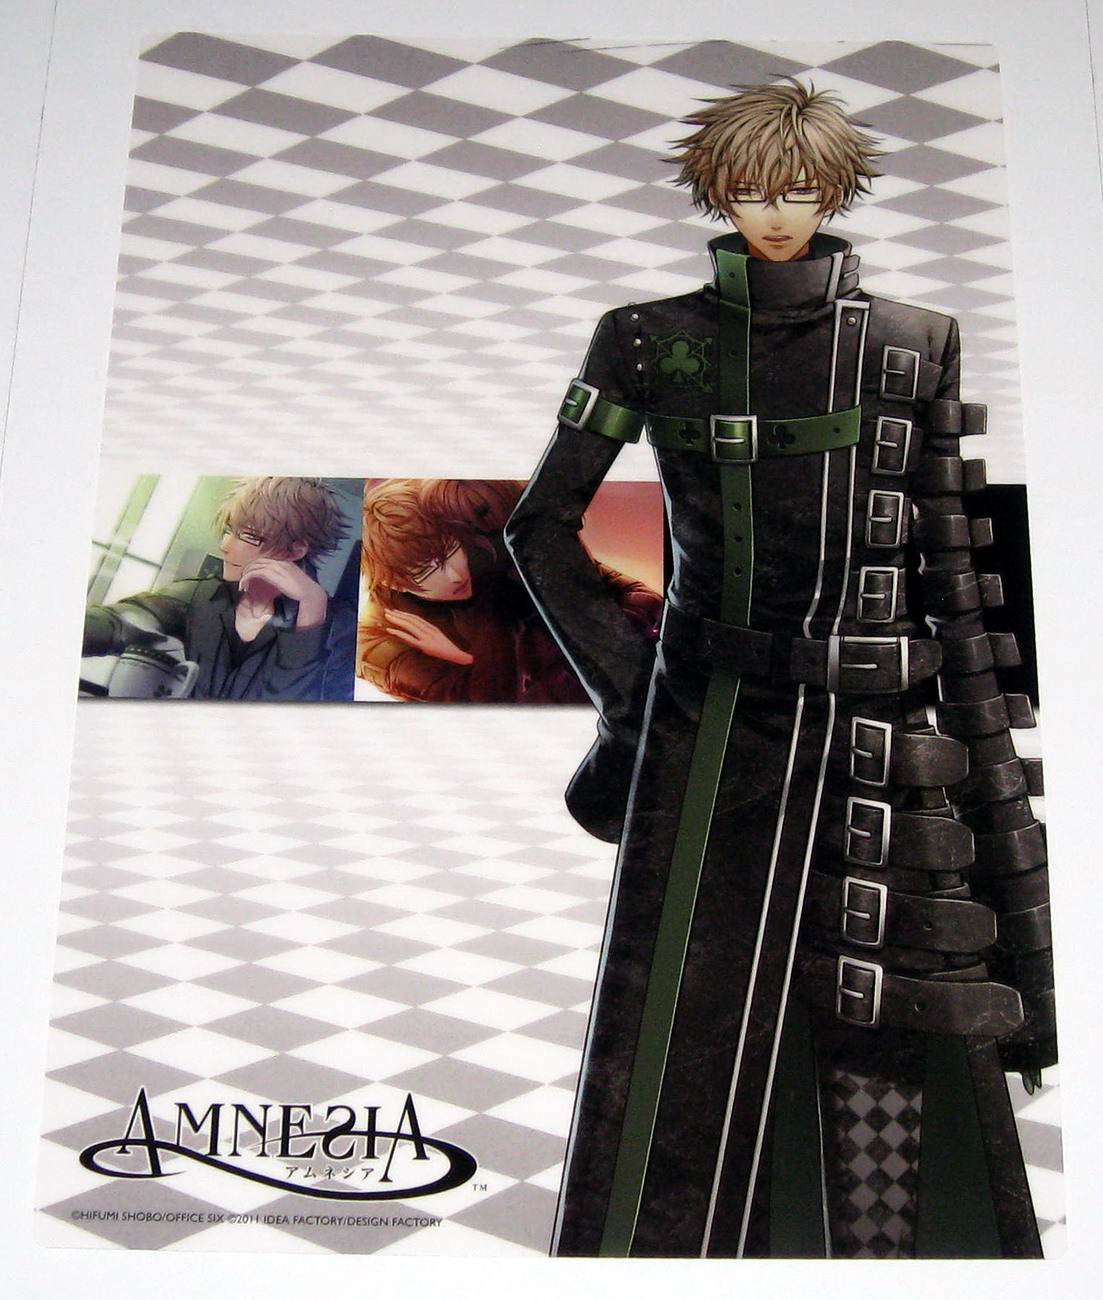 Amnesia Still Collection Premium v7 - 04